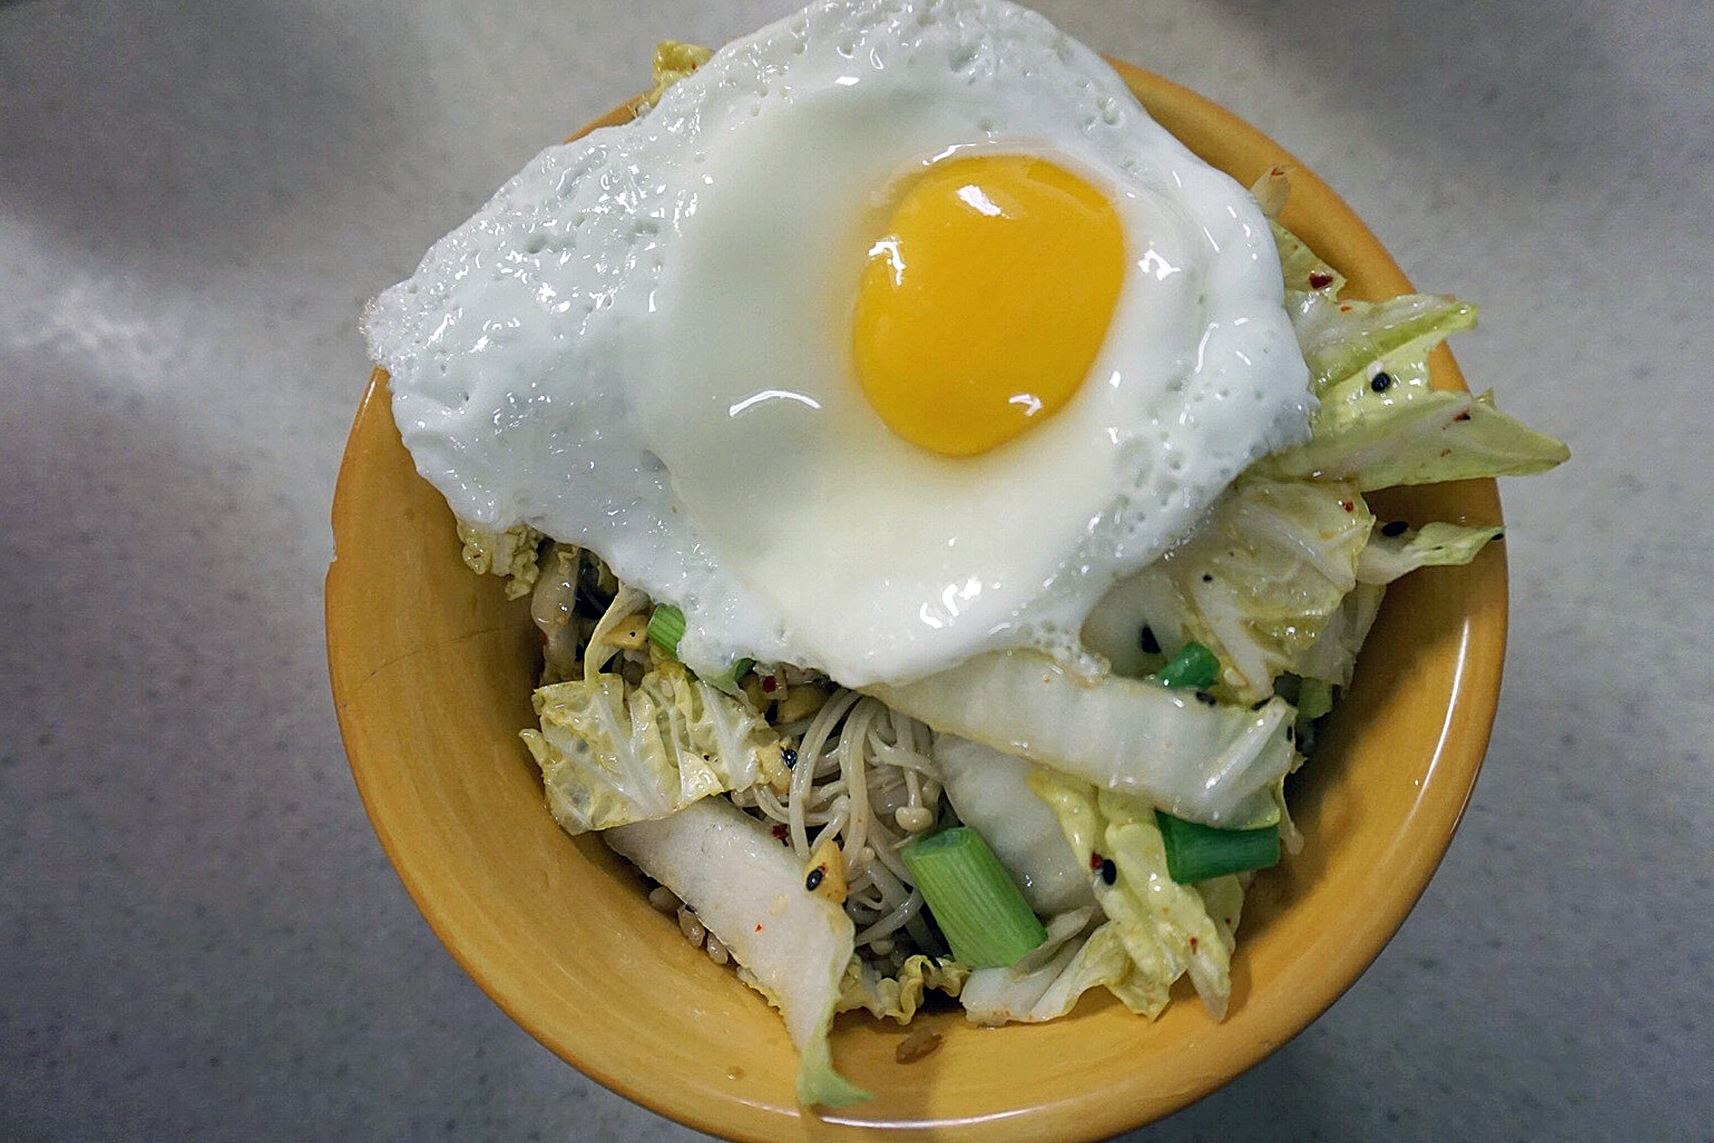 dinnerinabox0309_bibimbap Vegetable Bibimbap and kimchee.